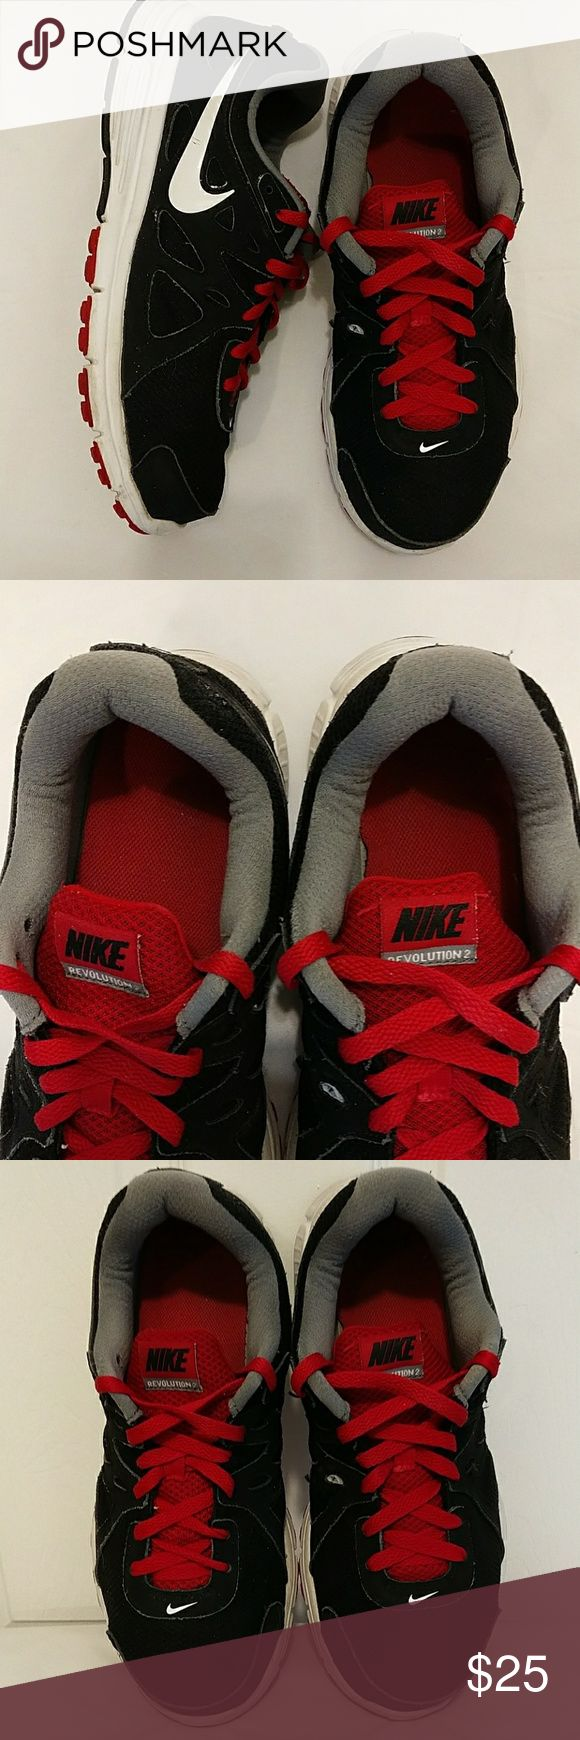 Nike revolution 2 ,size 9W, sneakers Very good condition no steans no rips,they have o lot of use left in them Nike Shoes Sneakers